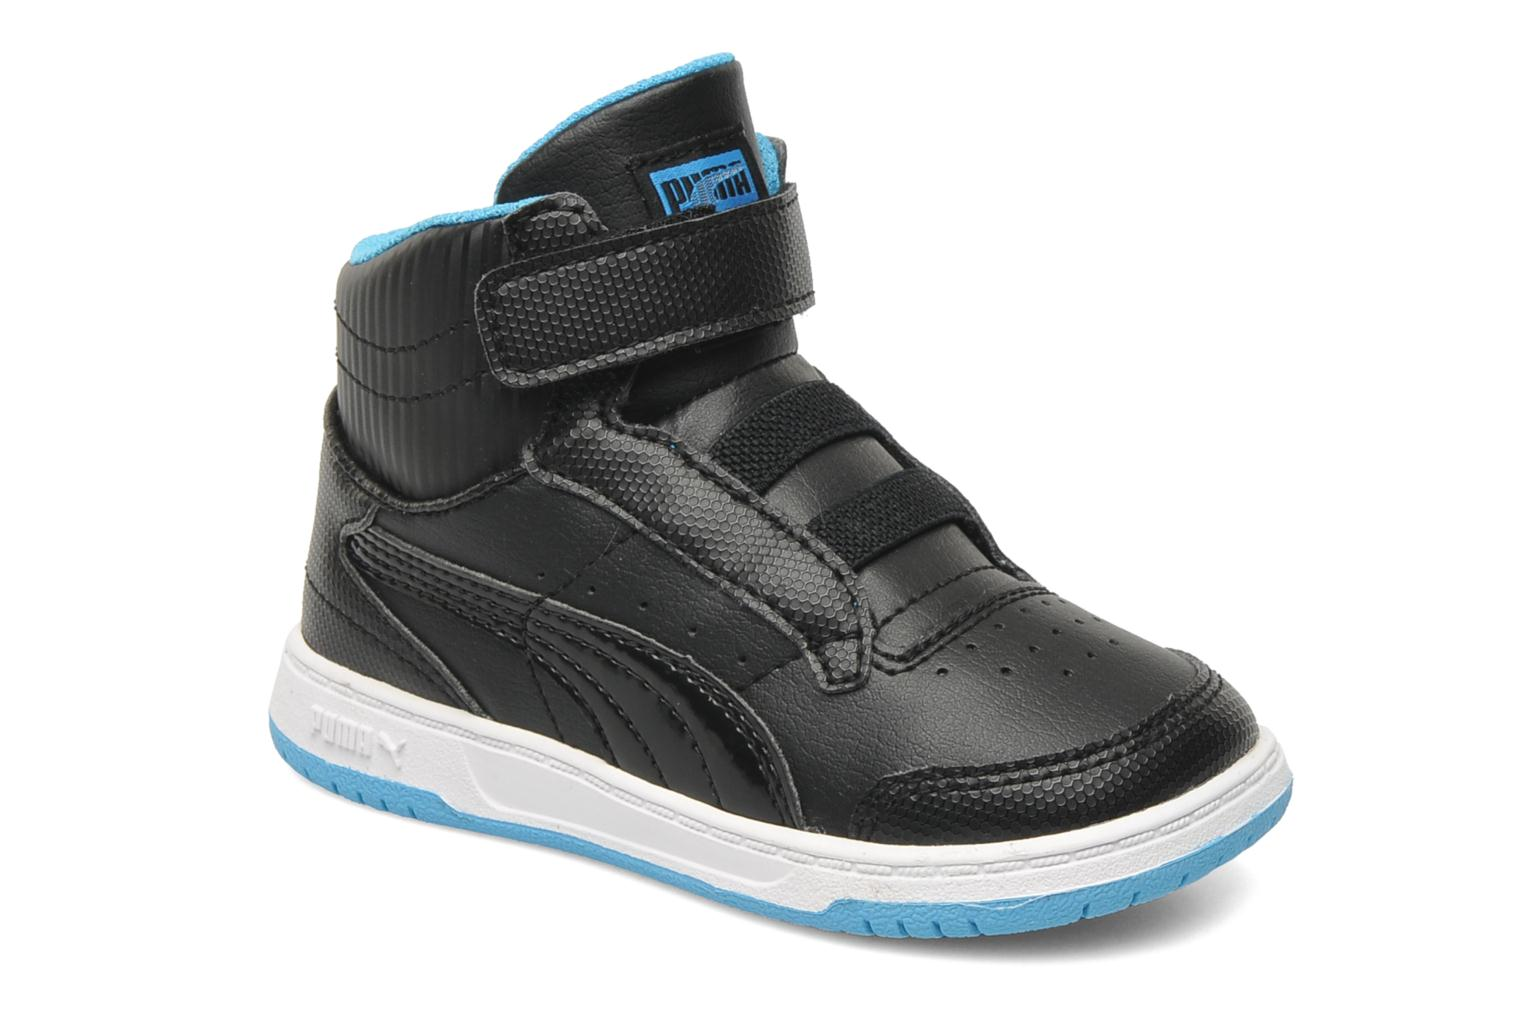 Full Court Hi V Kids Black-fluo blue-white